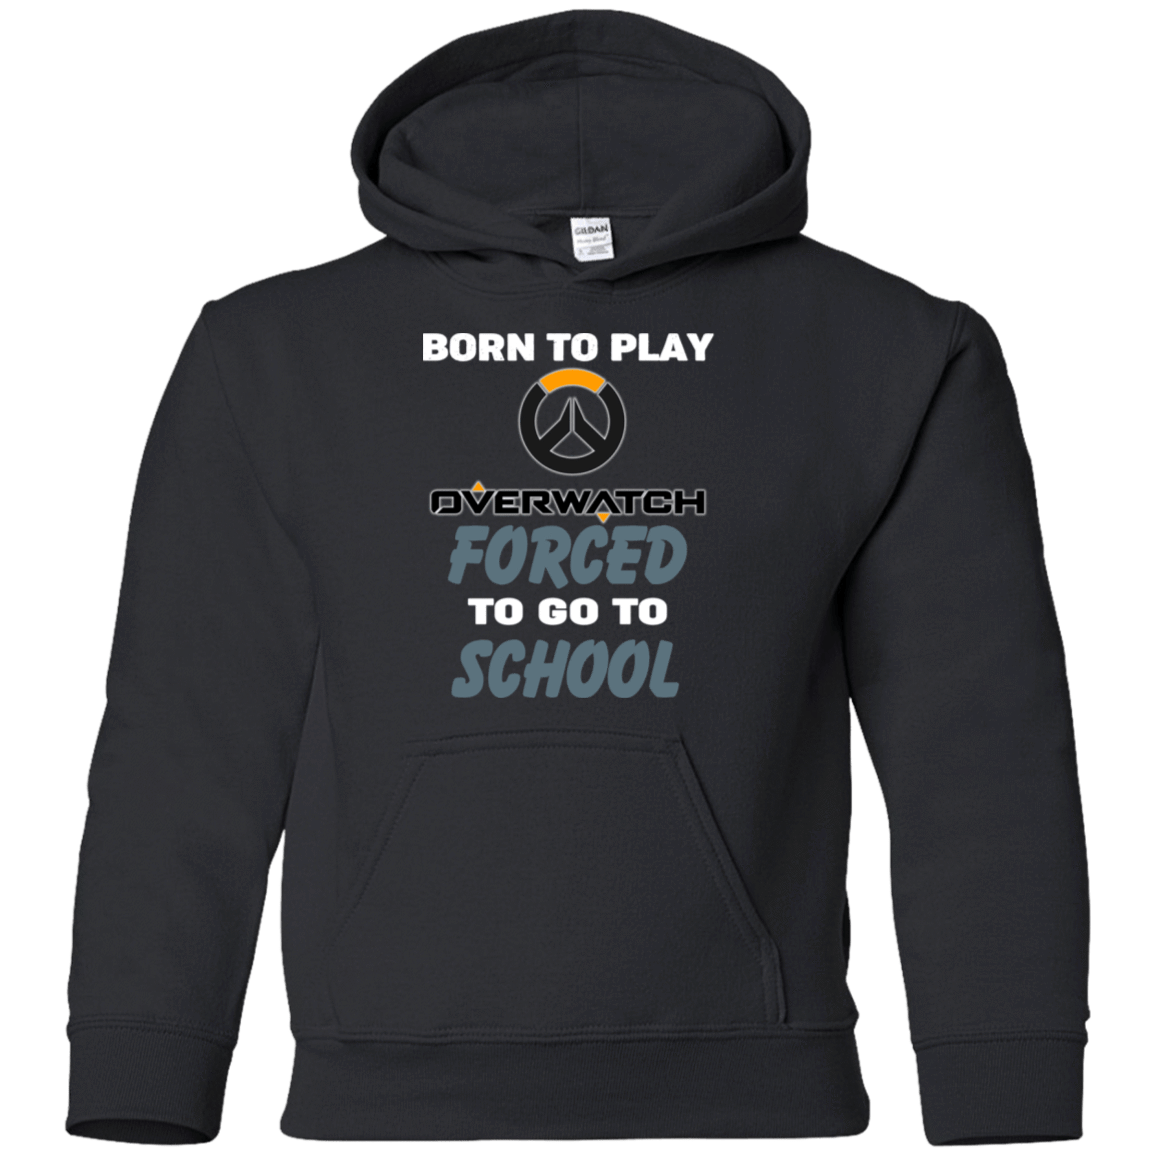 Born To Play Overwatch Forced To Go To School 59-333-74209661-1281 - Tee Ript